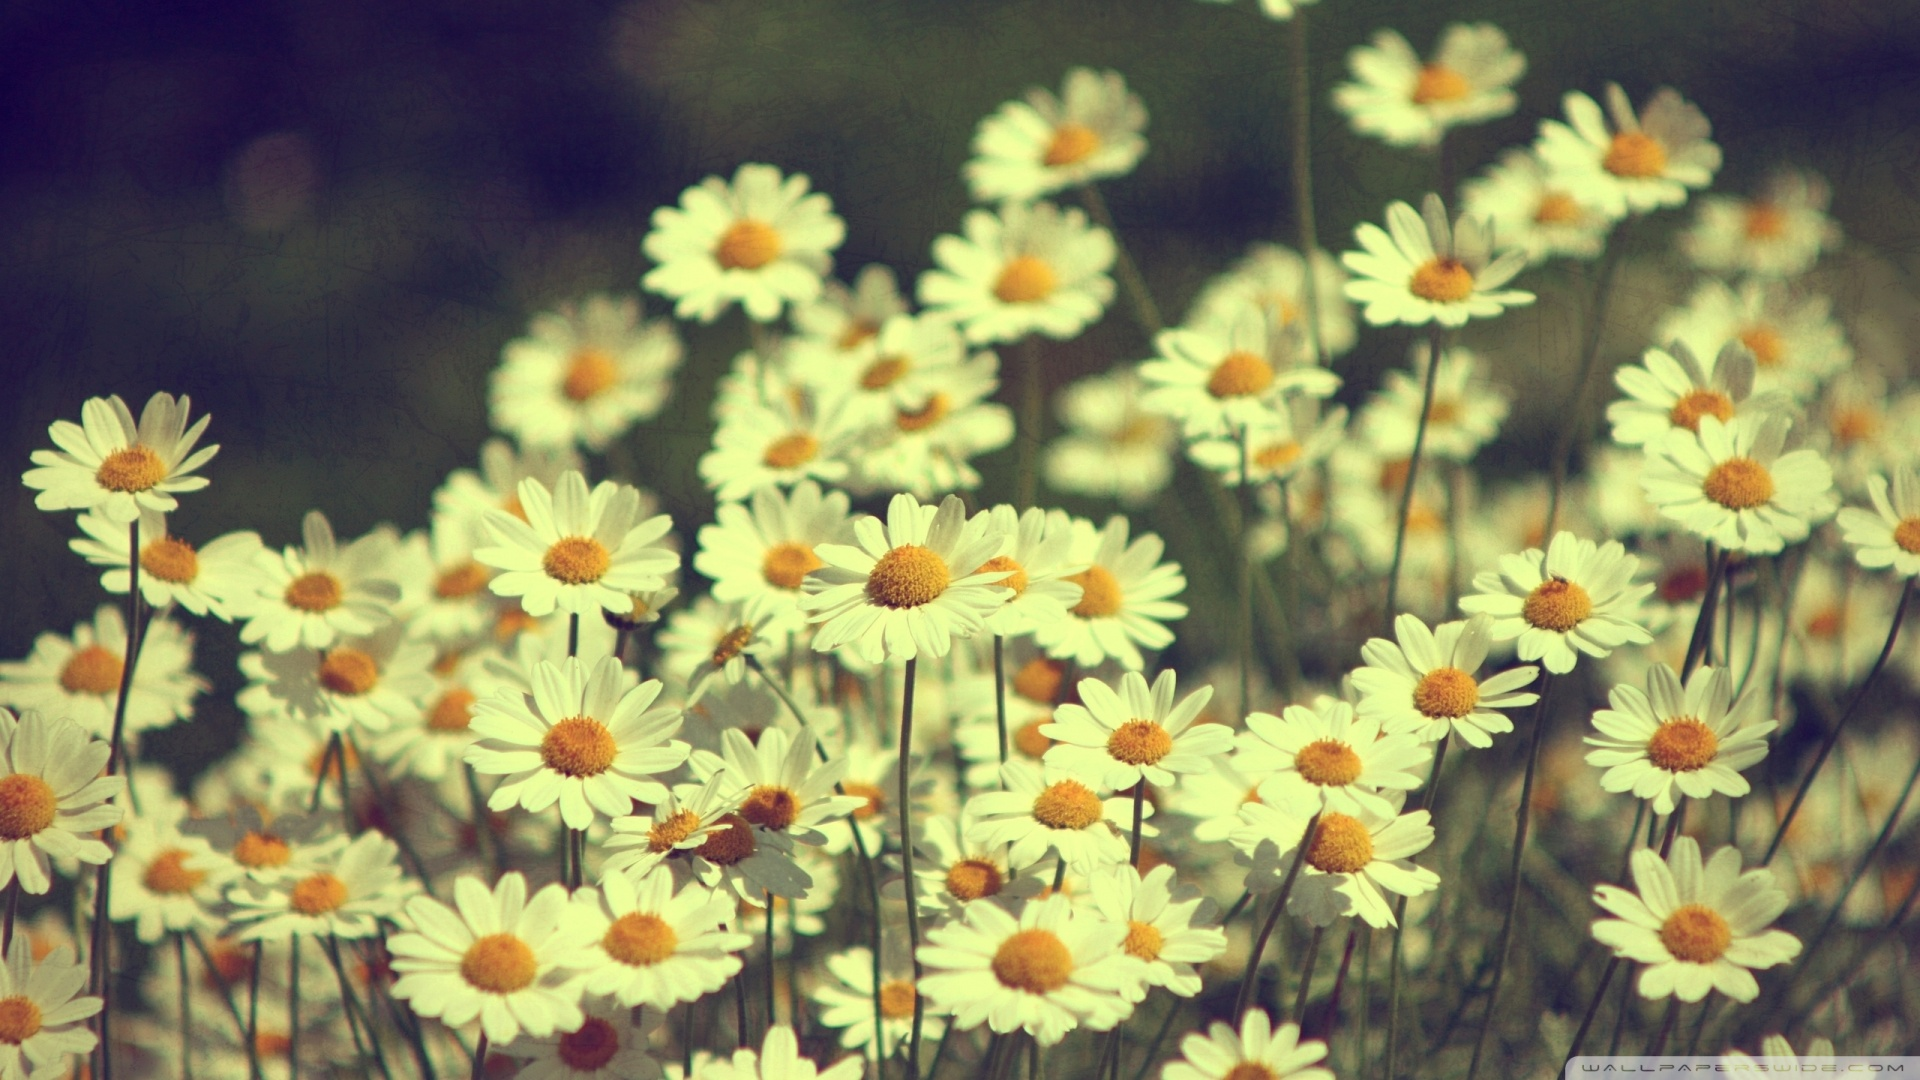 Vintage Daisies Photography Wallpaper 1920x1080 Vintage Daisies 1920x1080